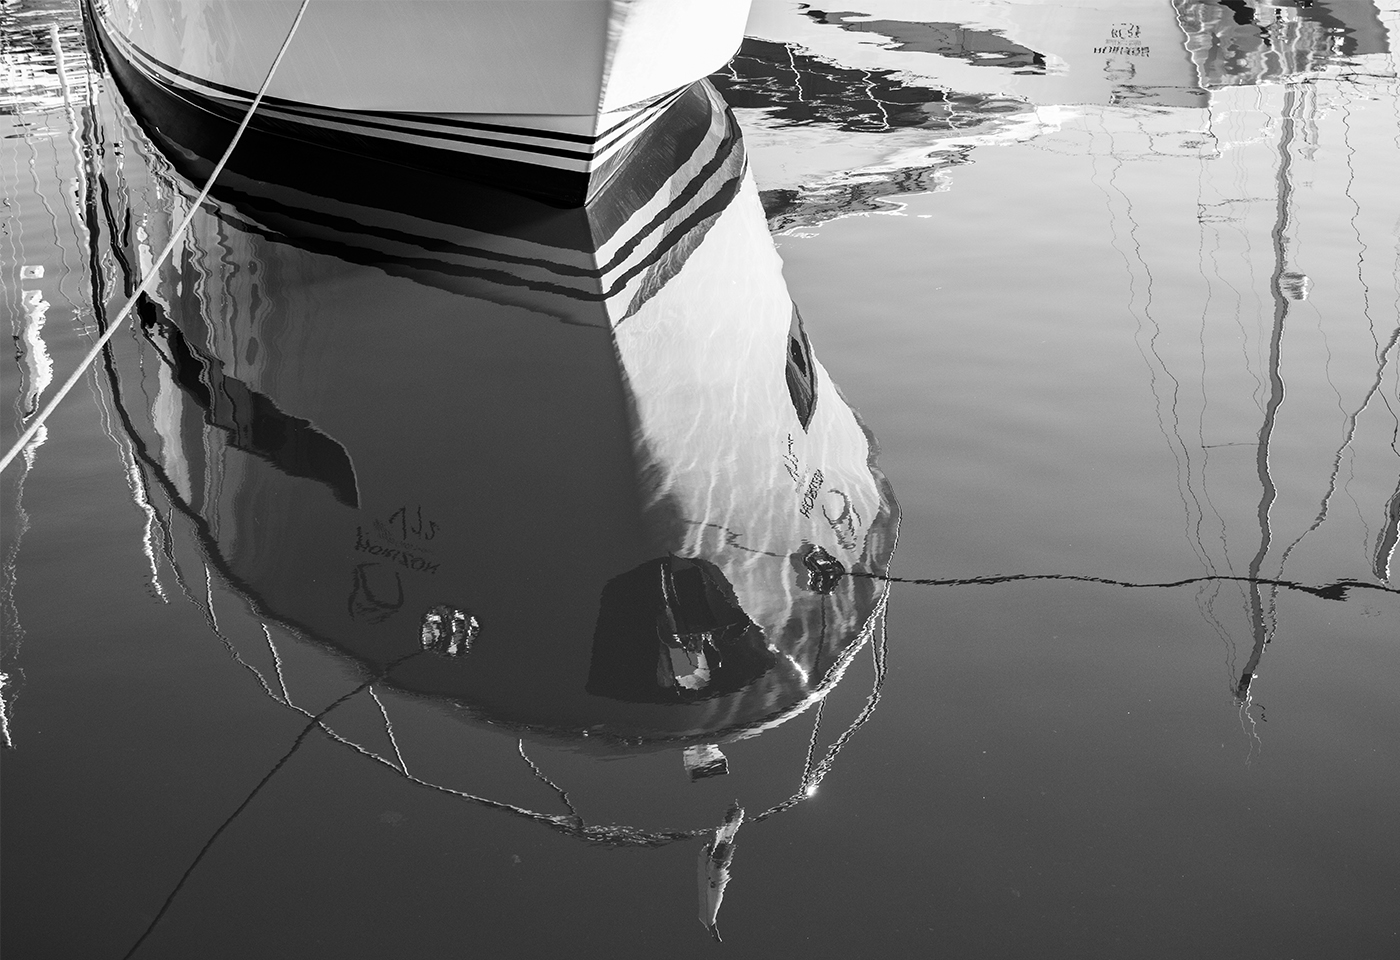 Black and white reflection of boat on water